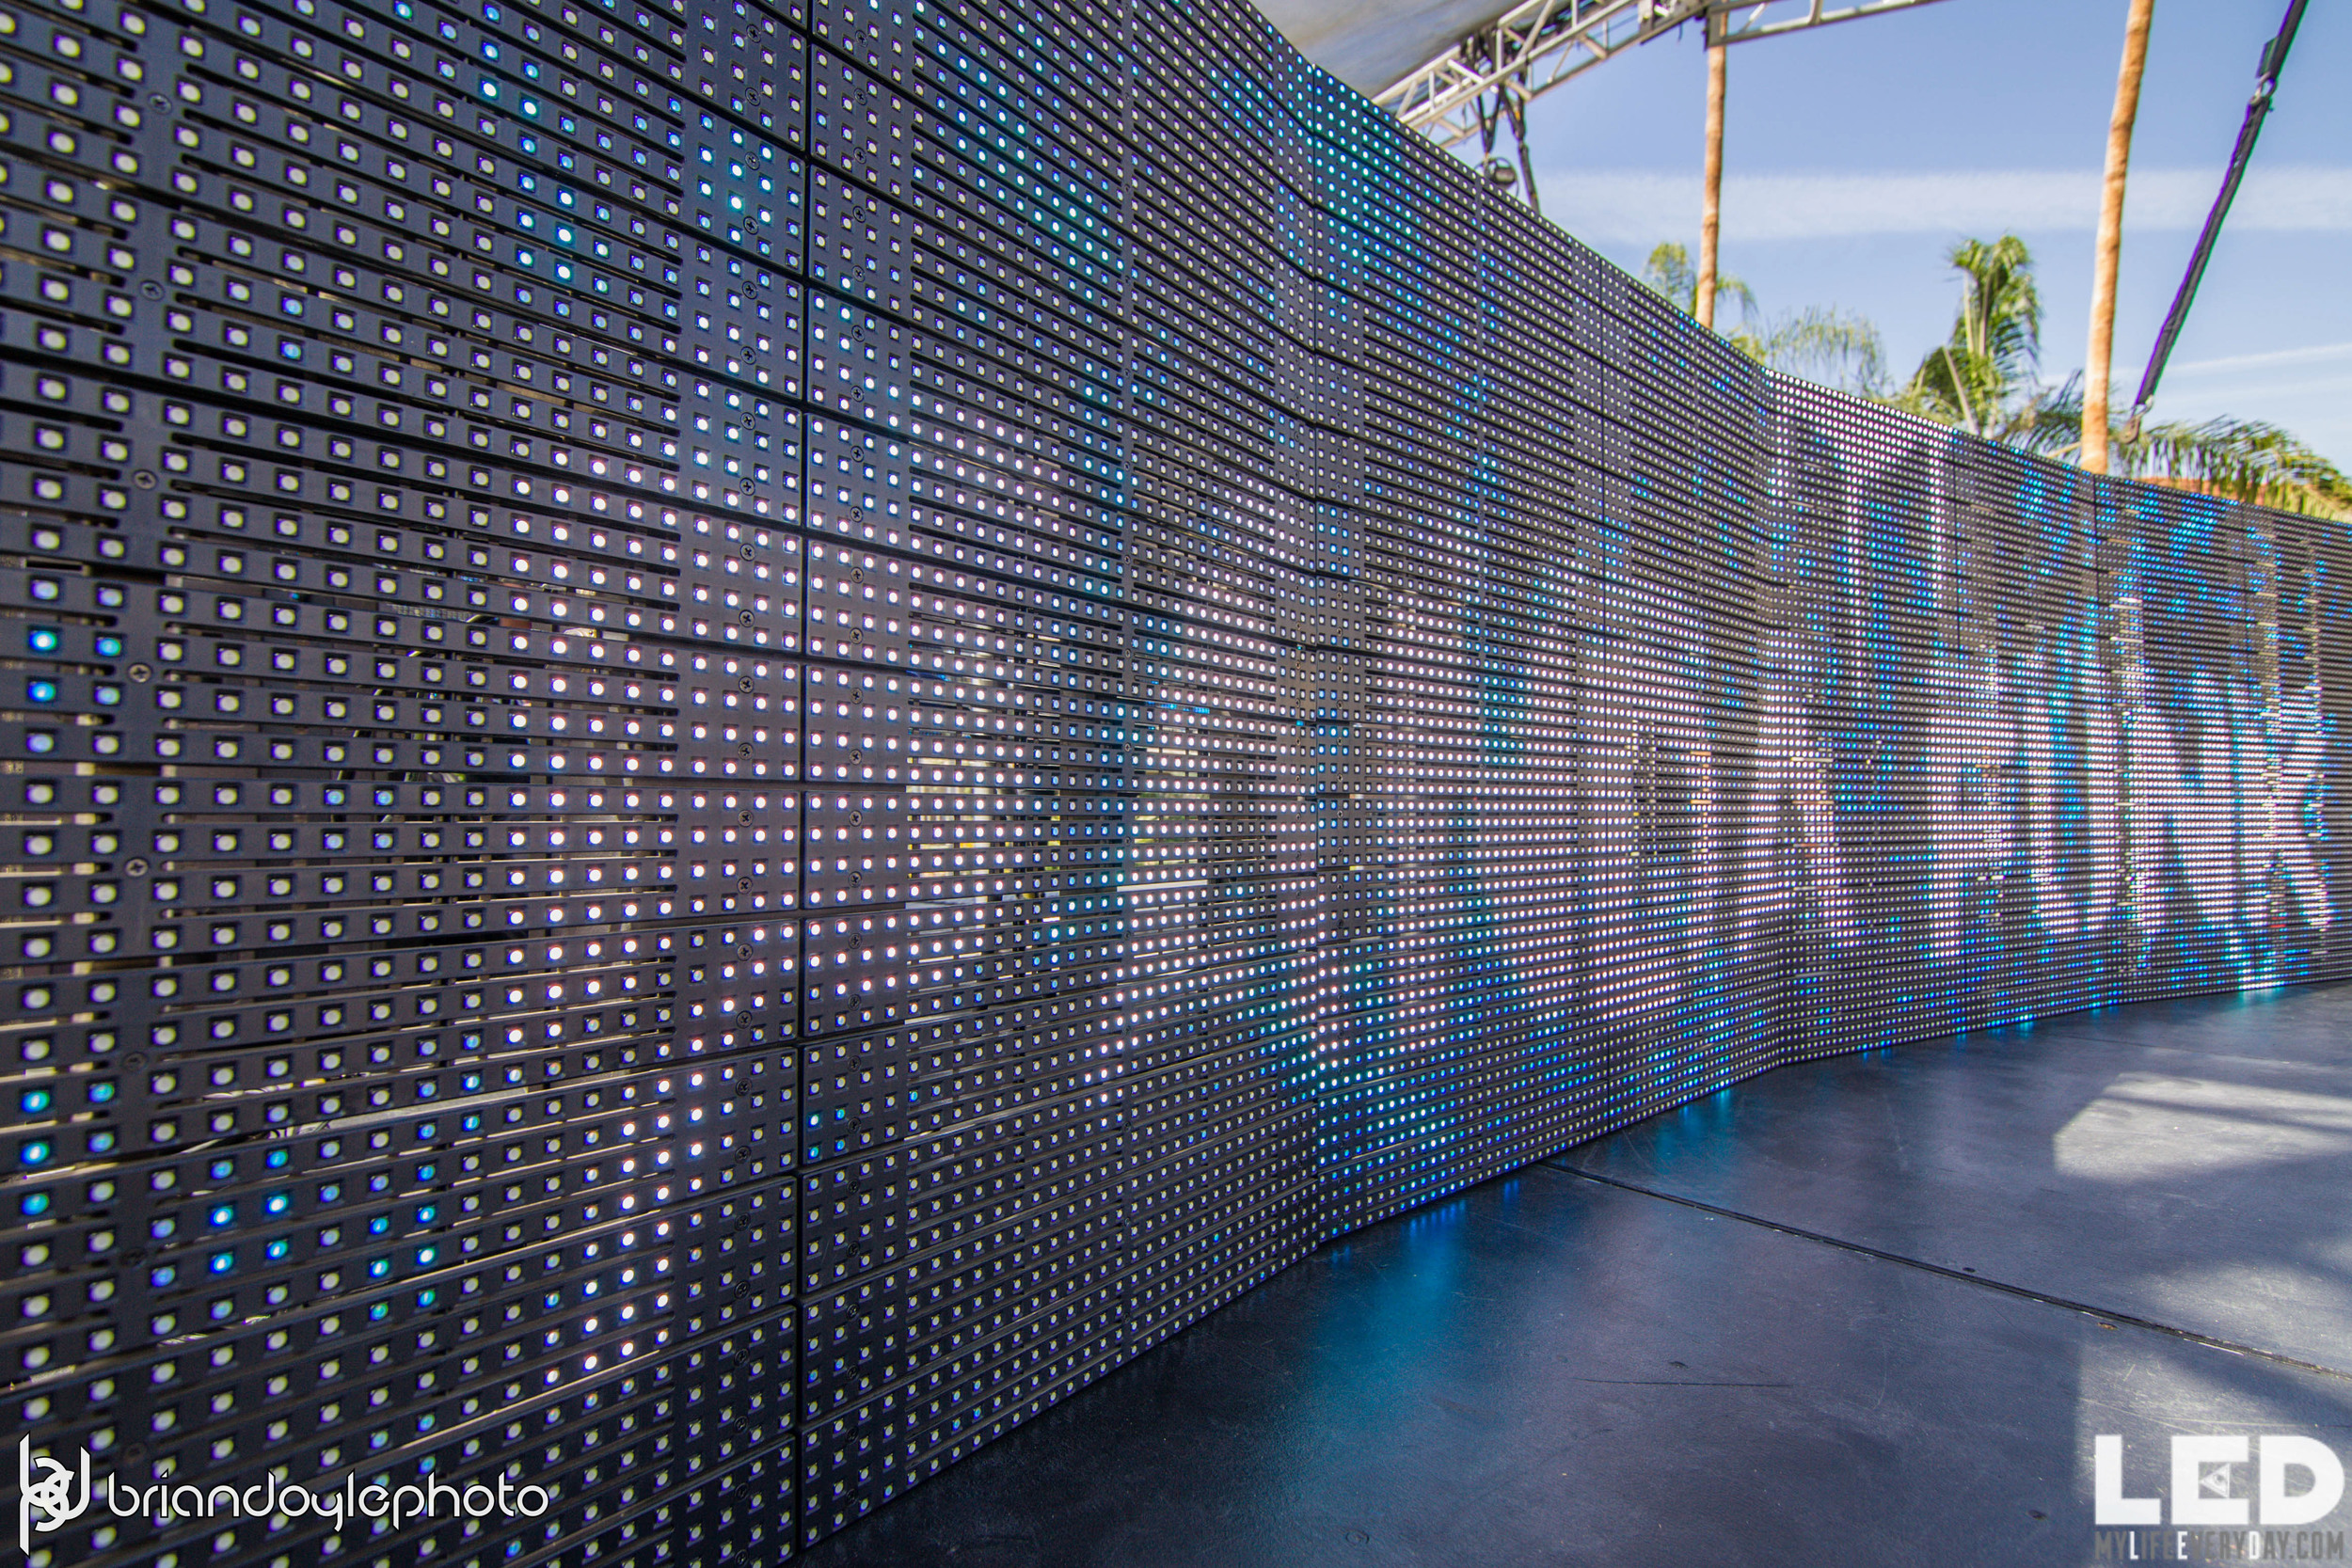 LED Day Club Day 2  Deorro and Chris 04.10.2015-21.jpg